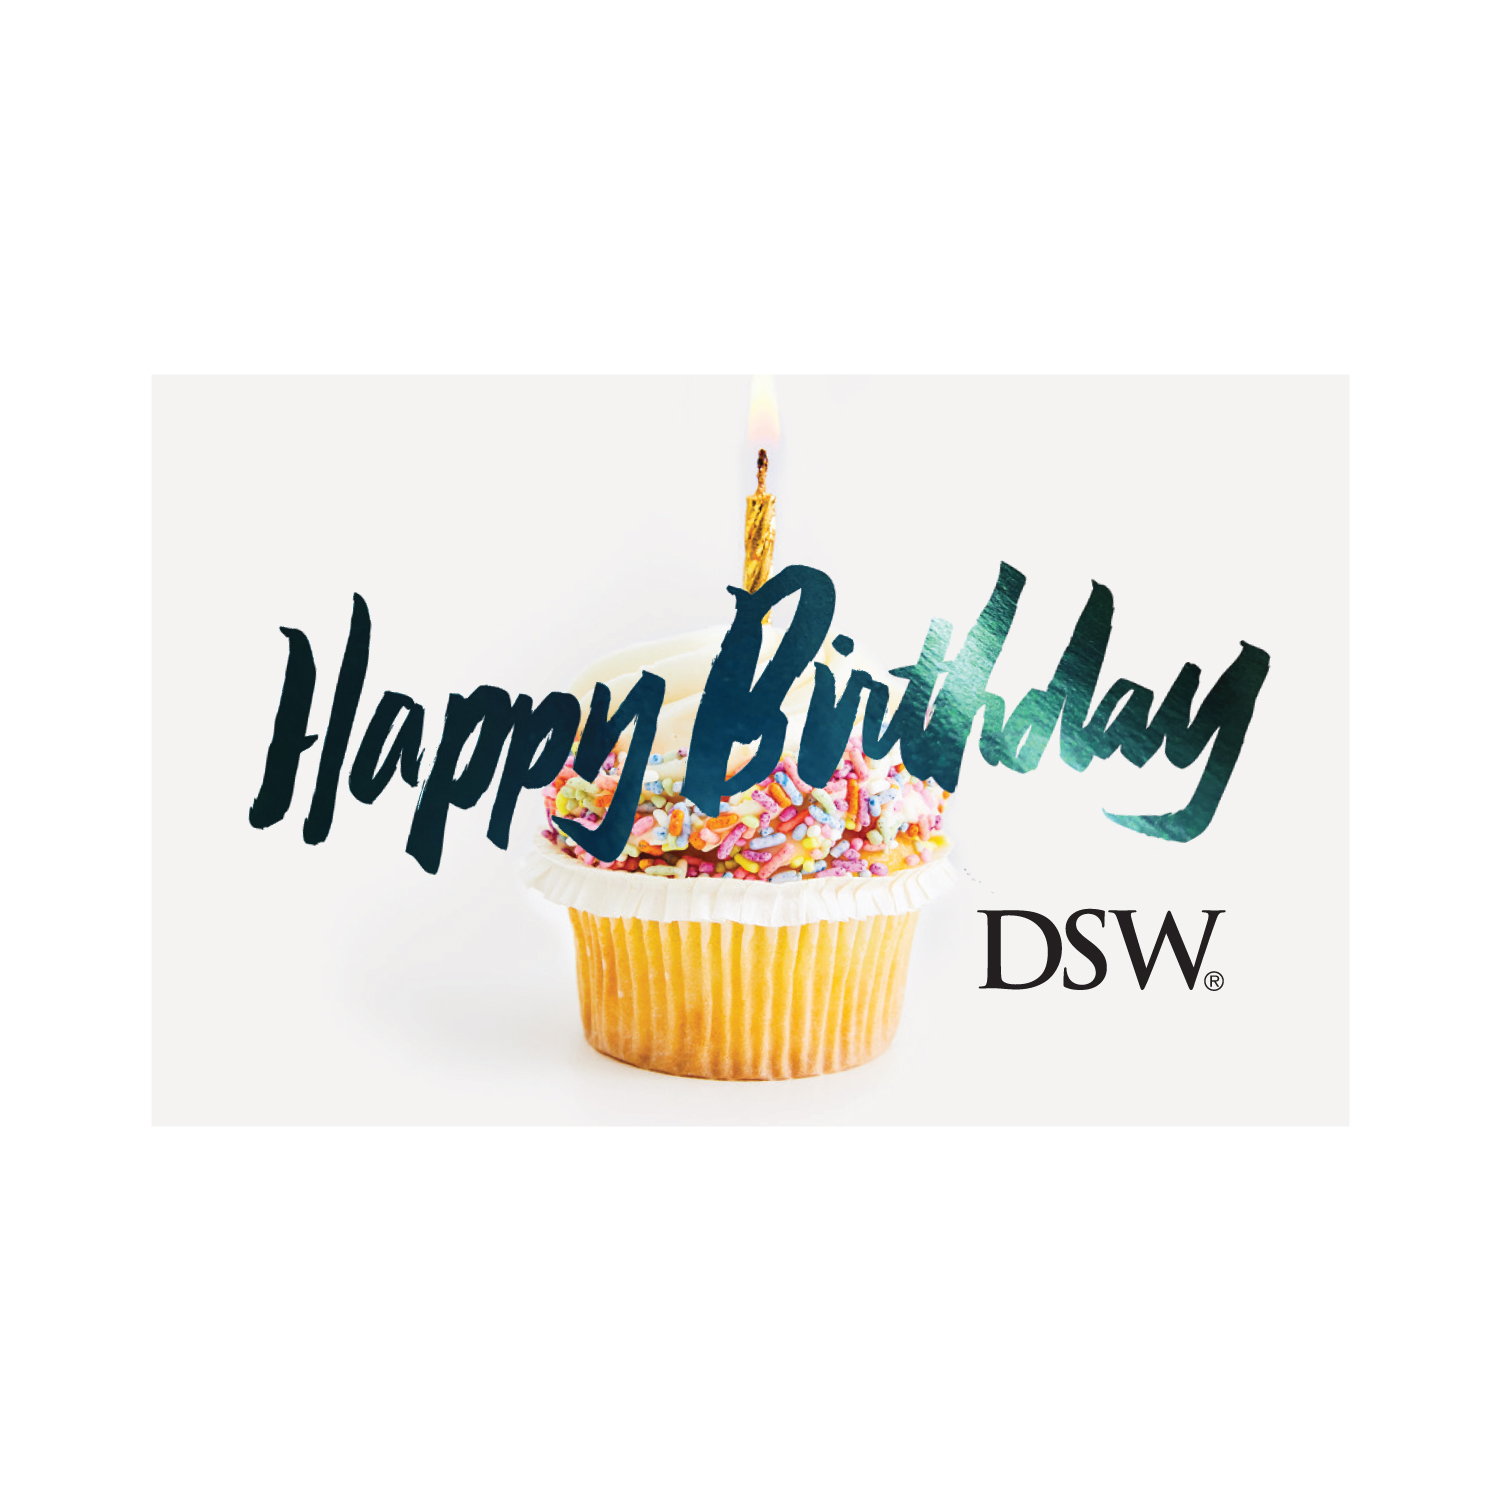 DSW Gift Card - Happy Birthday, 1 pk=20 - FR